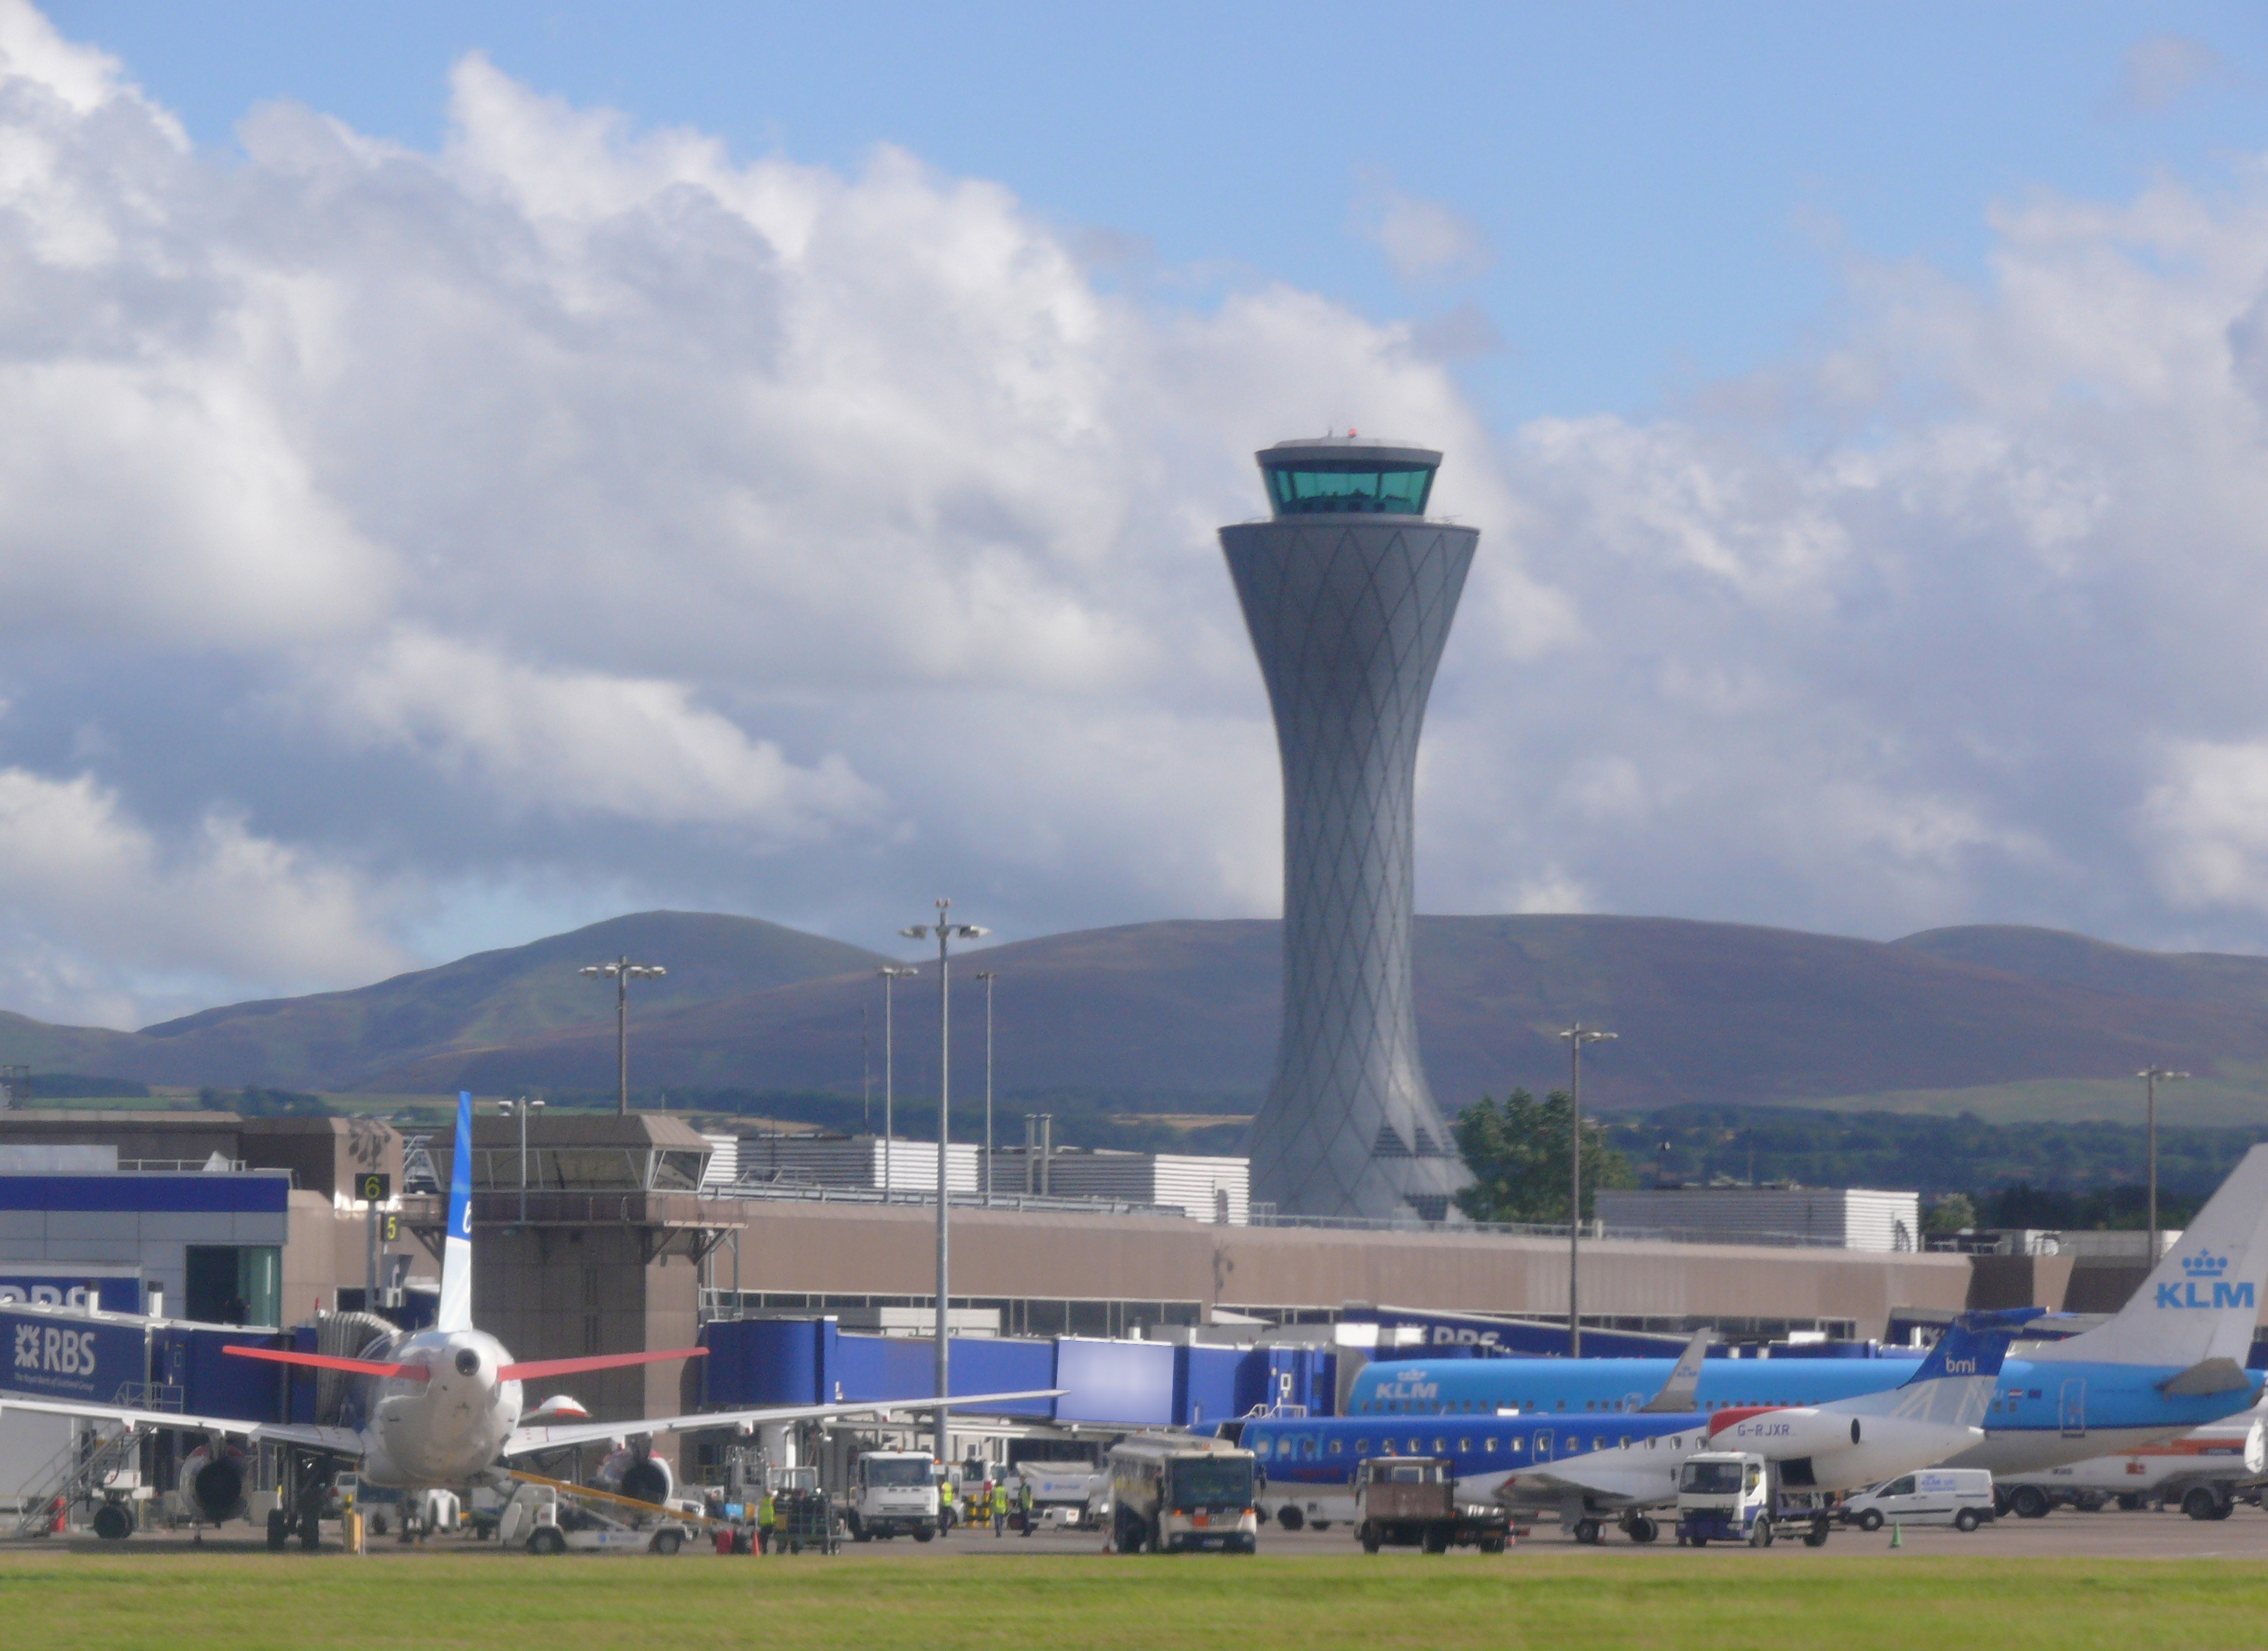 Edinburgh Airport is Scotland's busiest airport, handling over nine million passengers each year